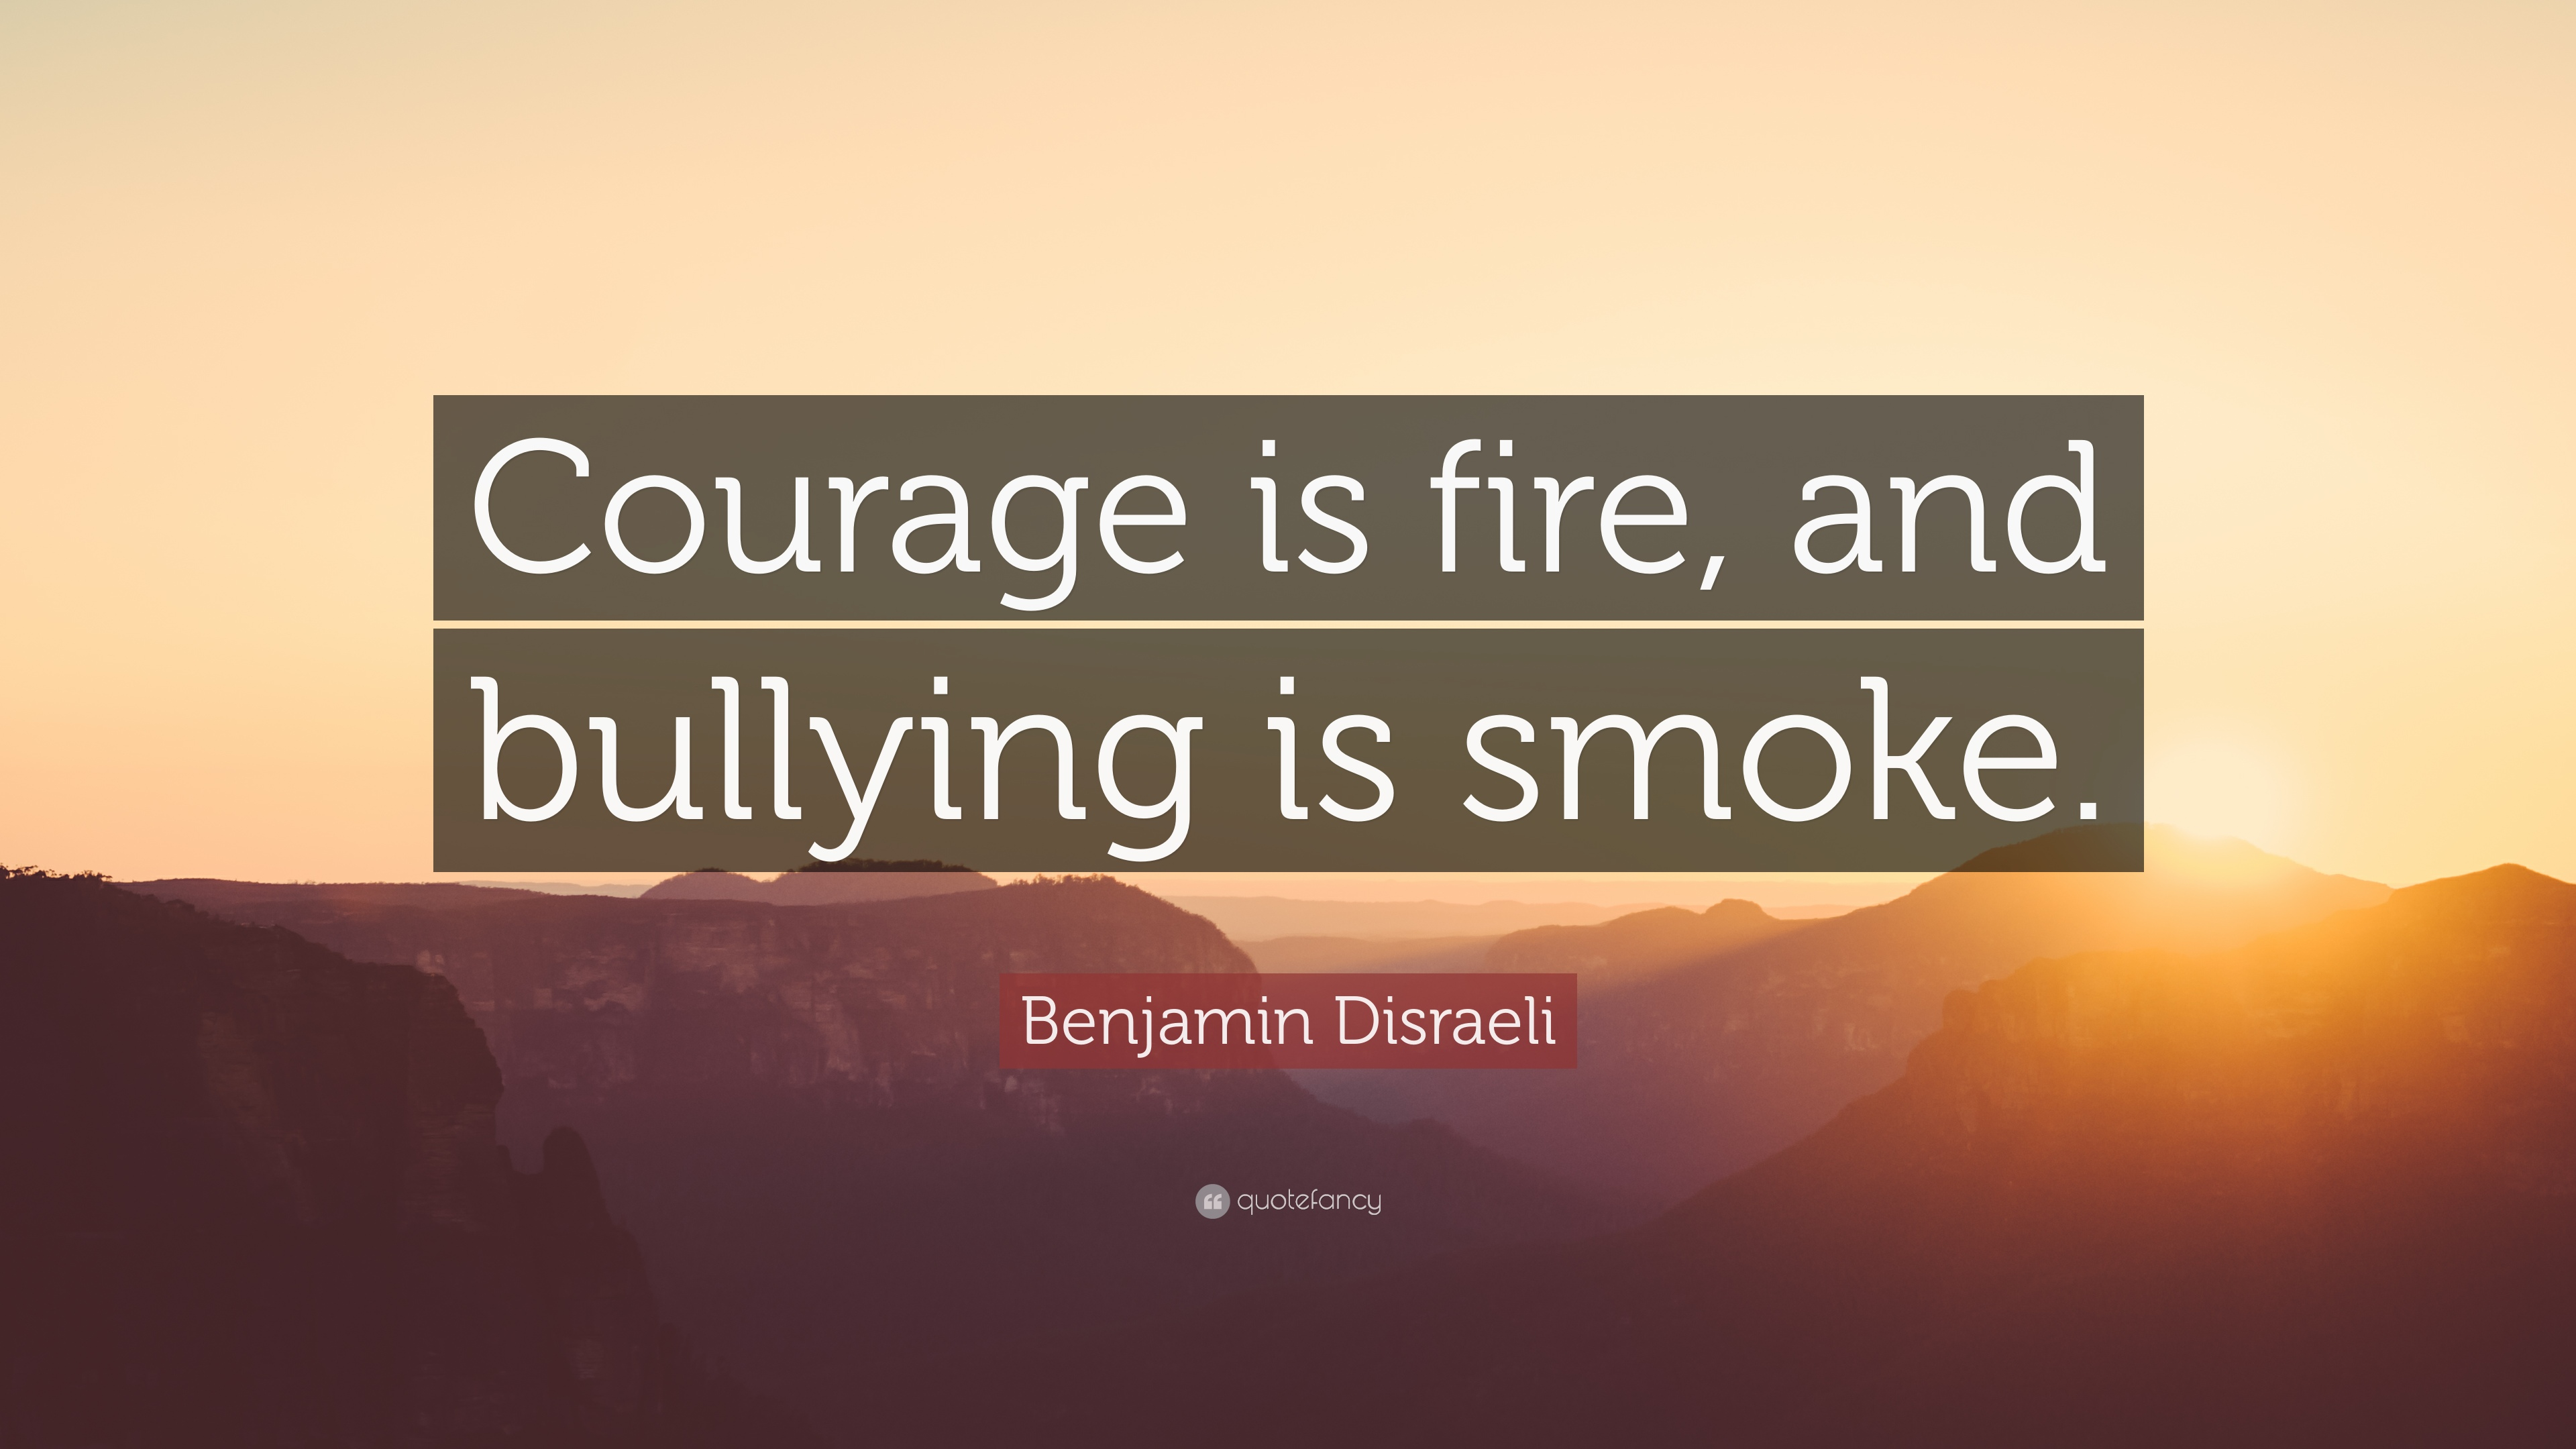 Bullying Quotes Magnificent Bullying Quotes 40 Wallpapers  Quotefancy